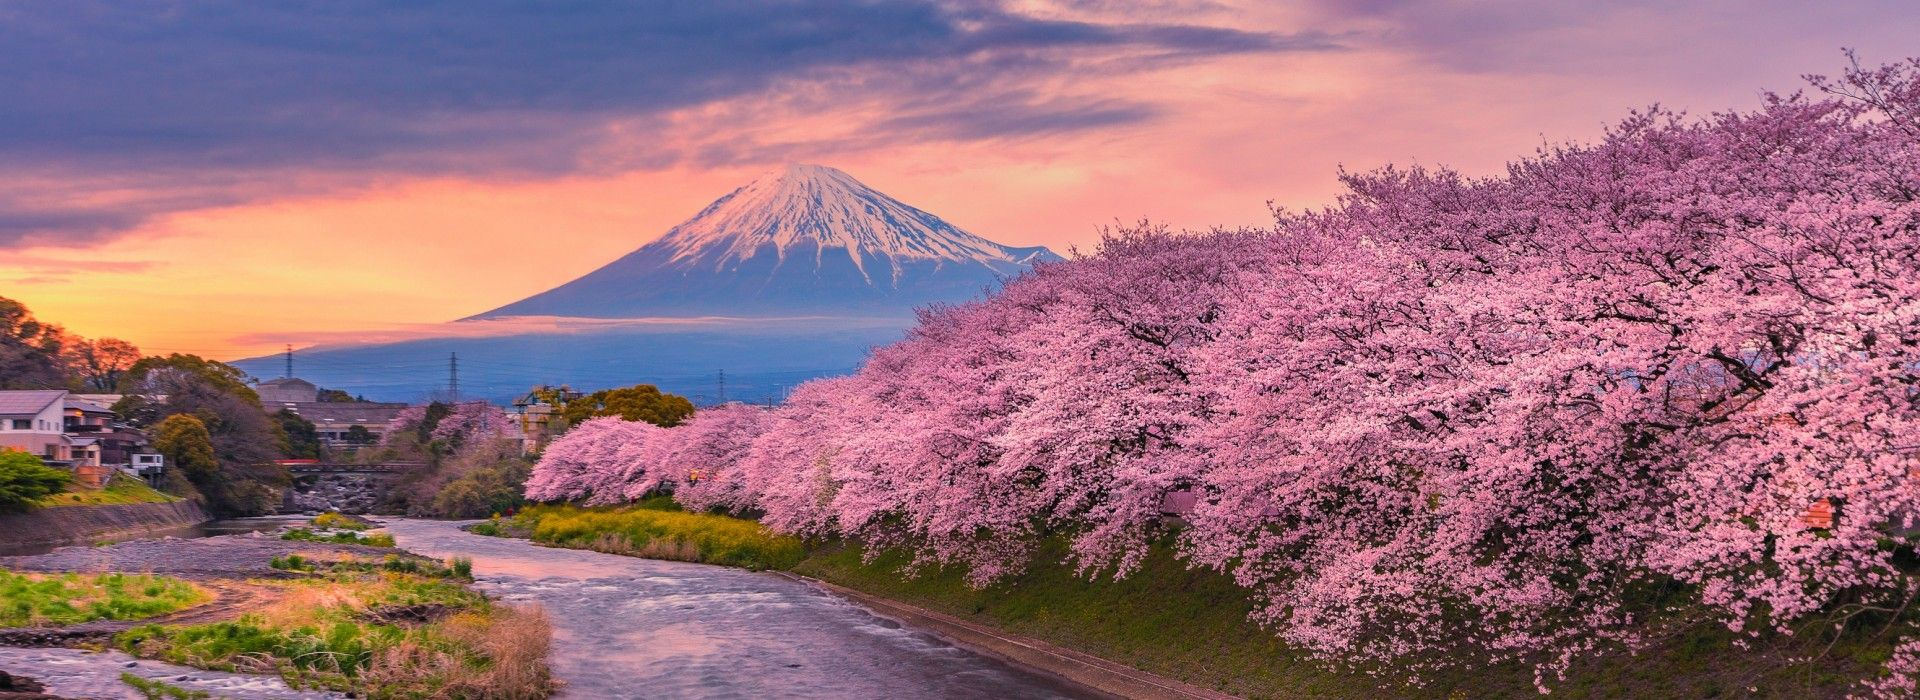 Boat tours, water sports and marine wildlife in Japan